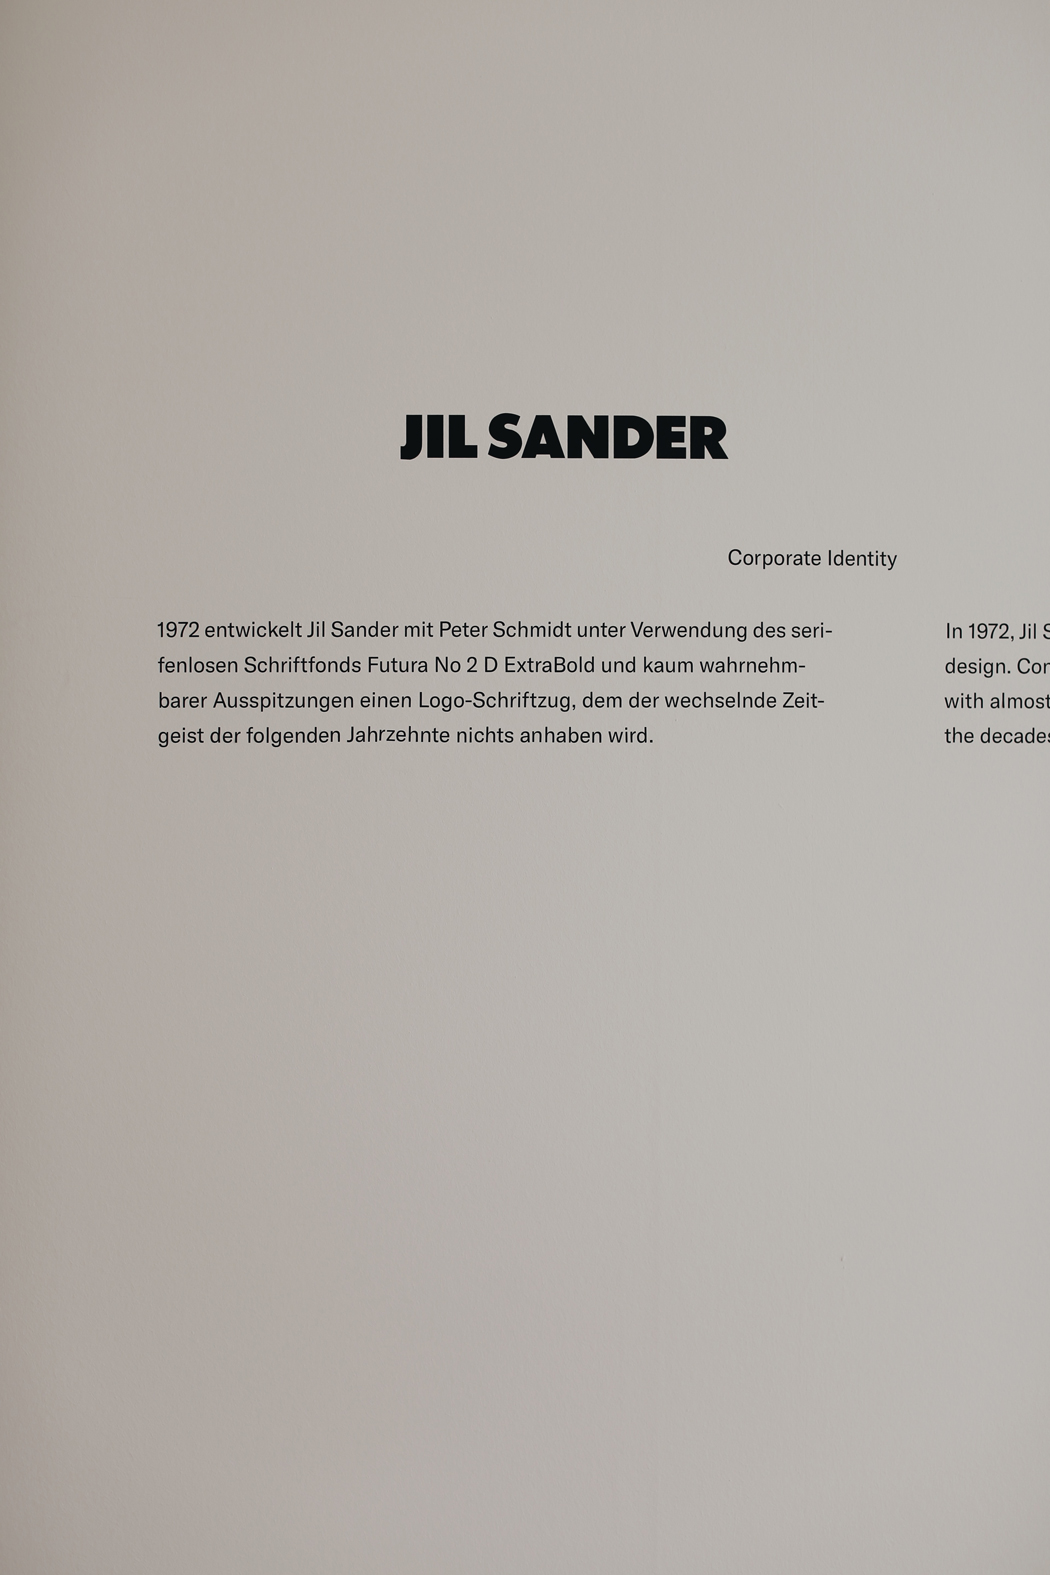 The Dashing Rider JIL SANDER Museum Angewandte Kunst Frankfurt